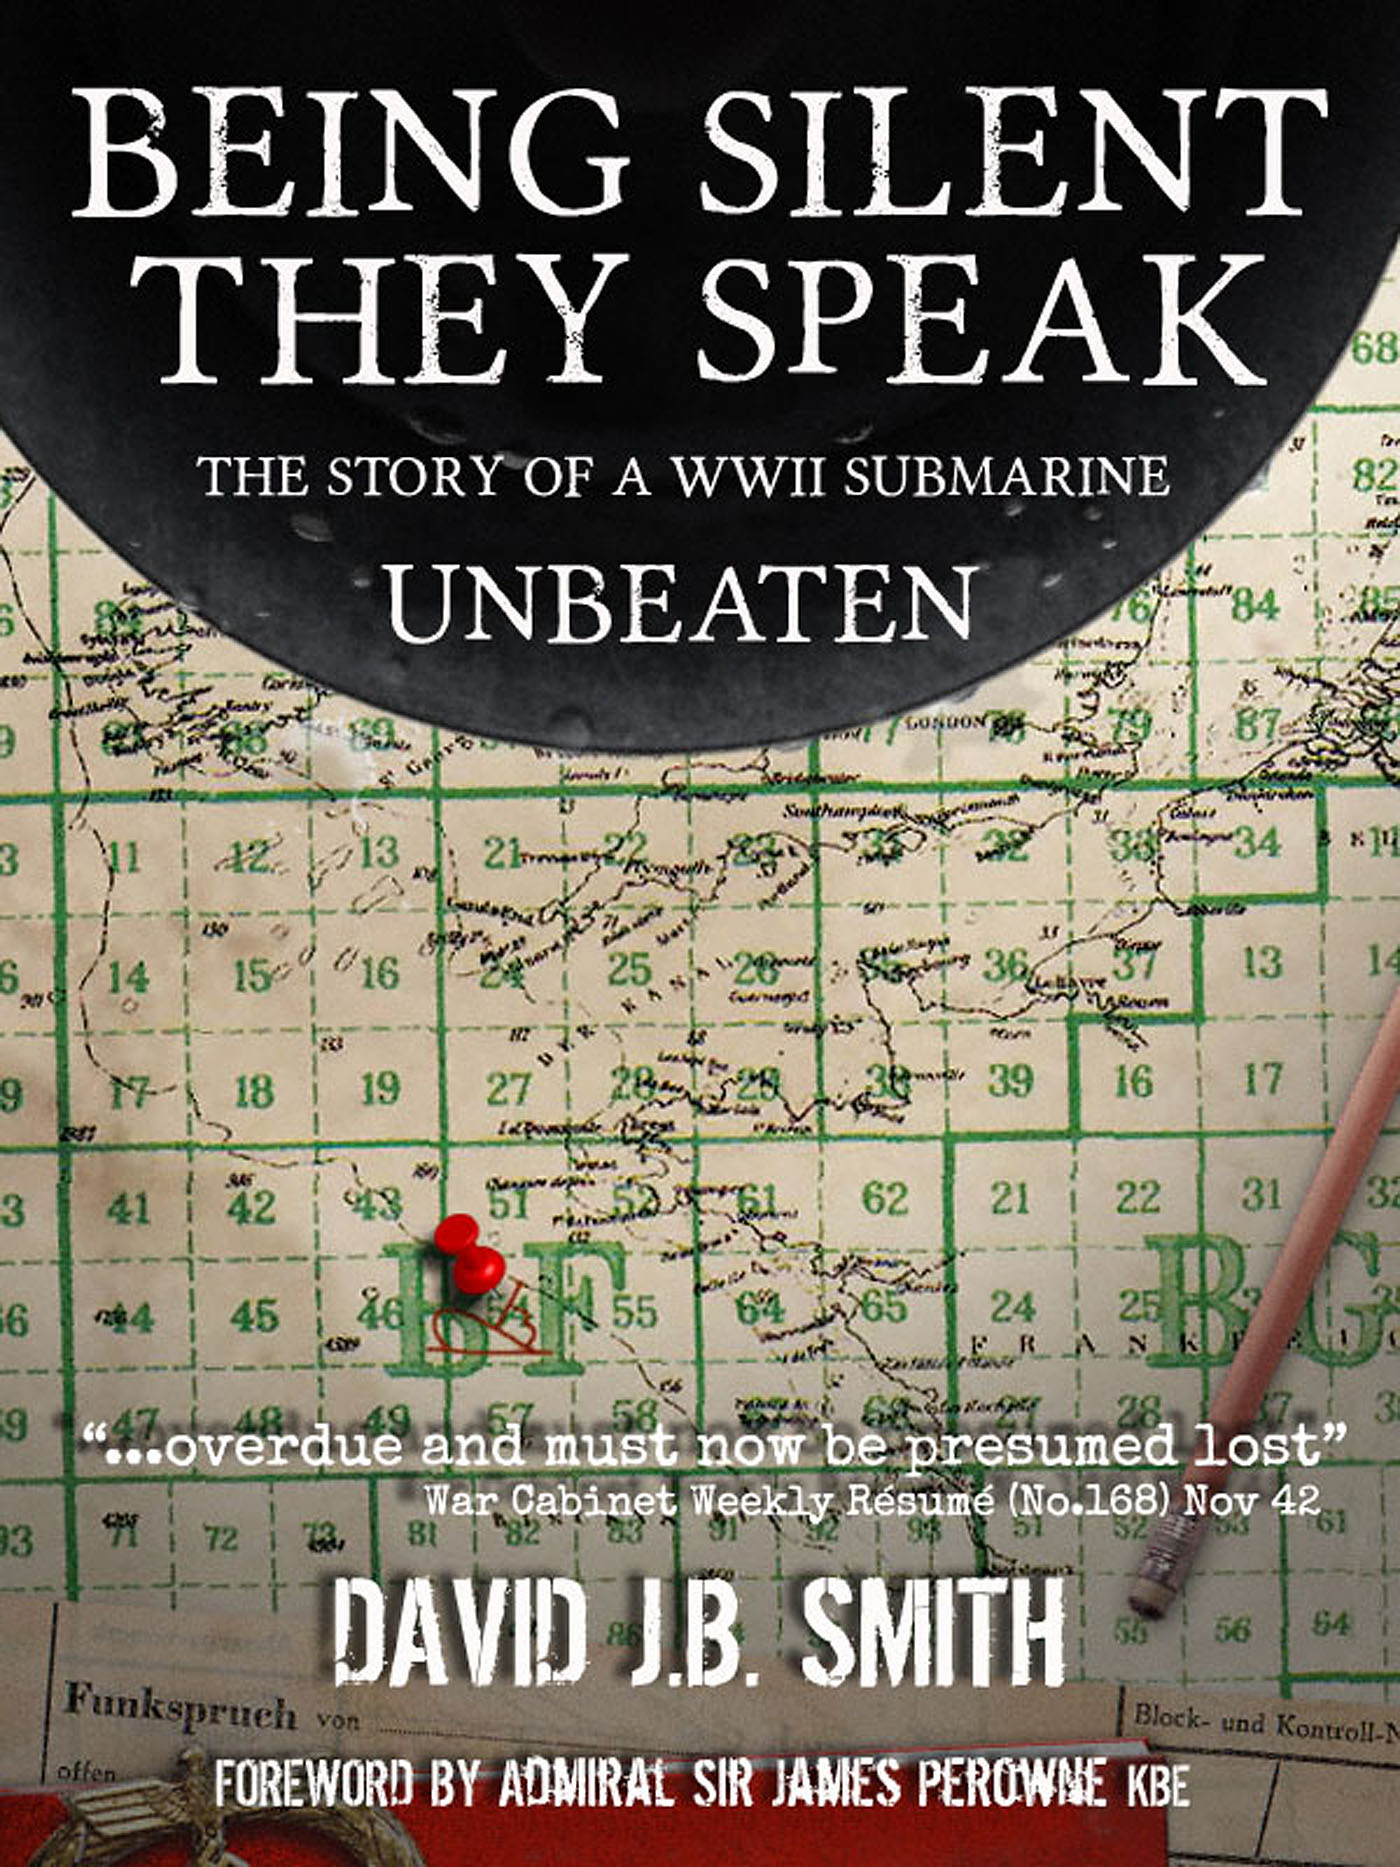 Being Silent They Speak By: David JB Smith